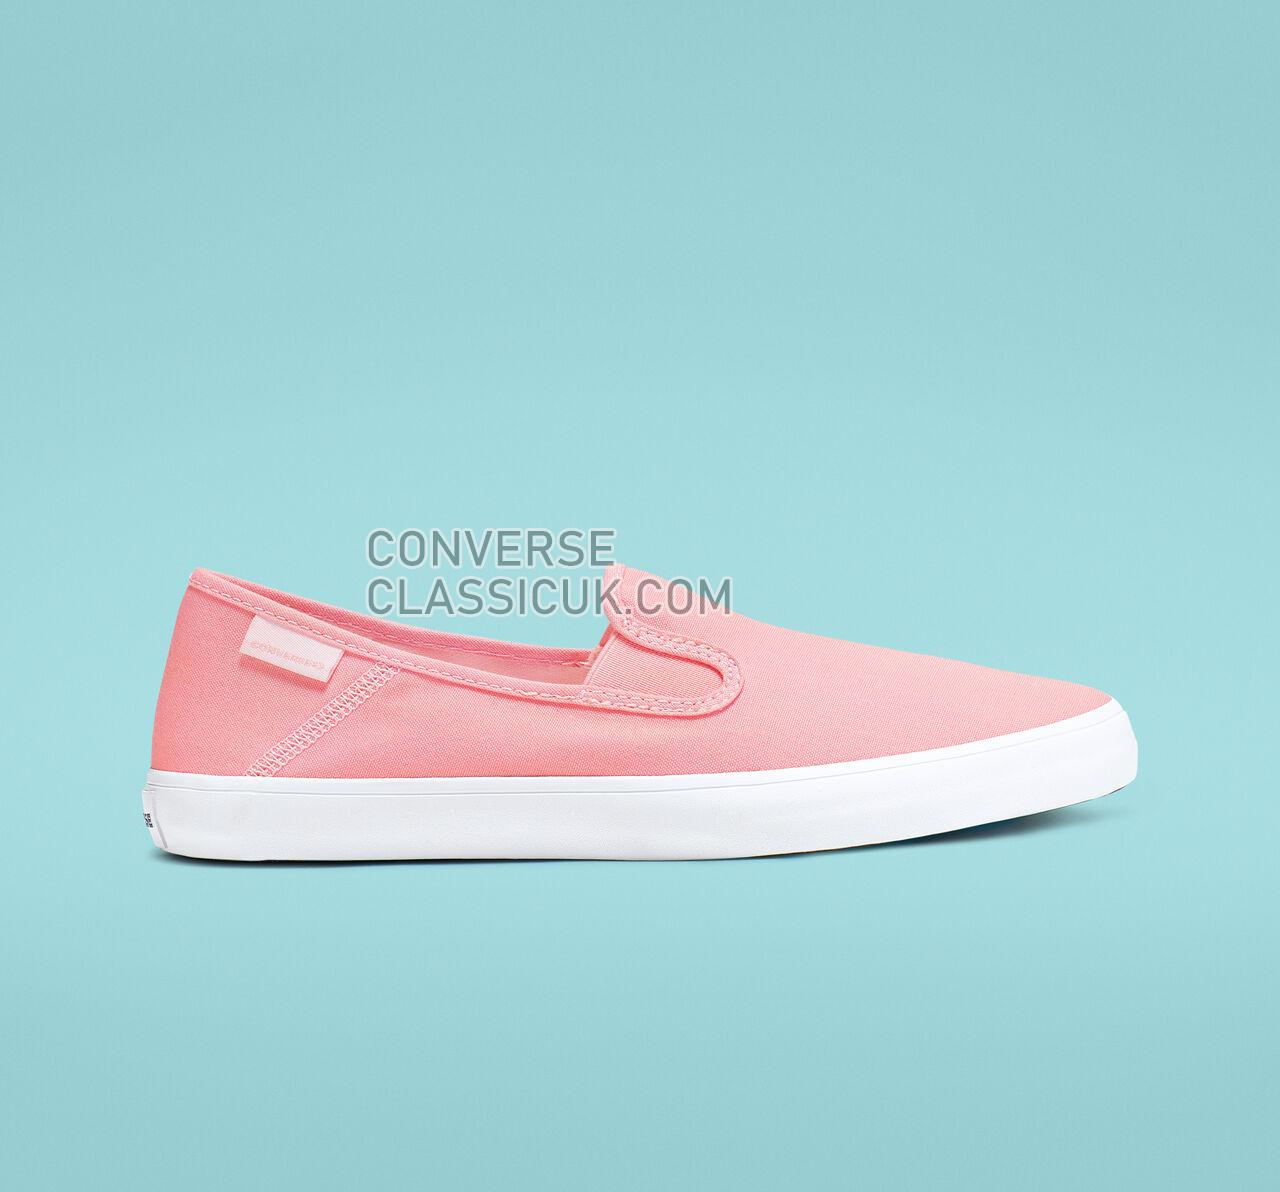 Converse Rio Summer Crush Slip Womens 564325F Bleached Coral/Washed Coral Shoes